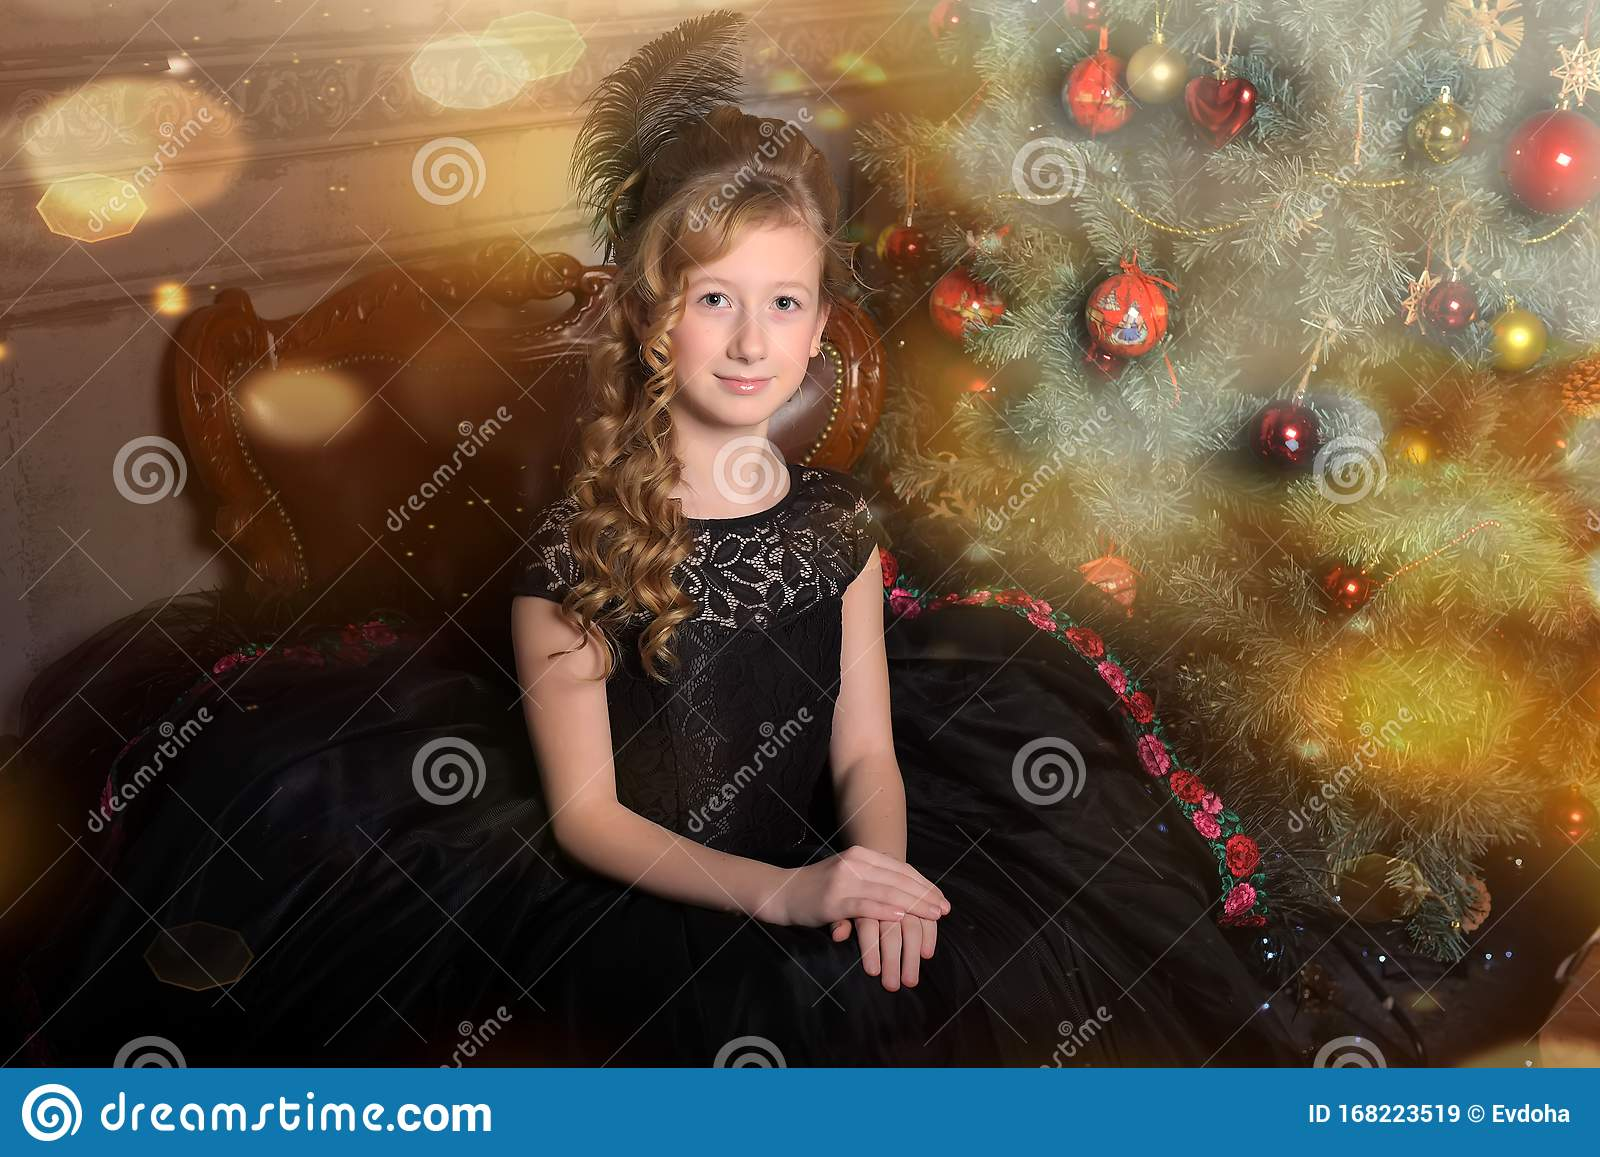 Girl In Elegant Black Dress With A Feather In The Evening Hairstyle By The Christmas Tree Stock Image Image Of Carnival Dress 168223519